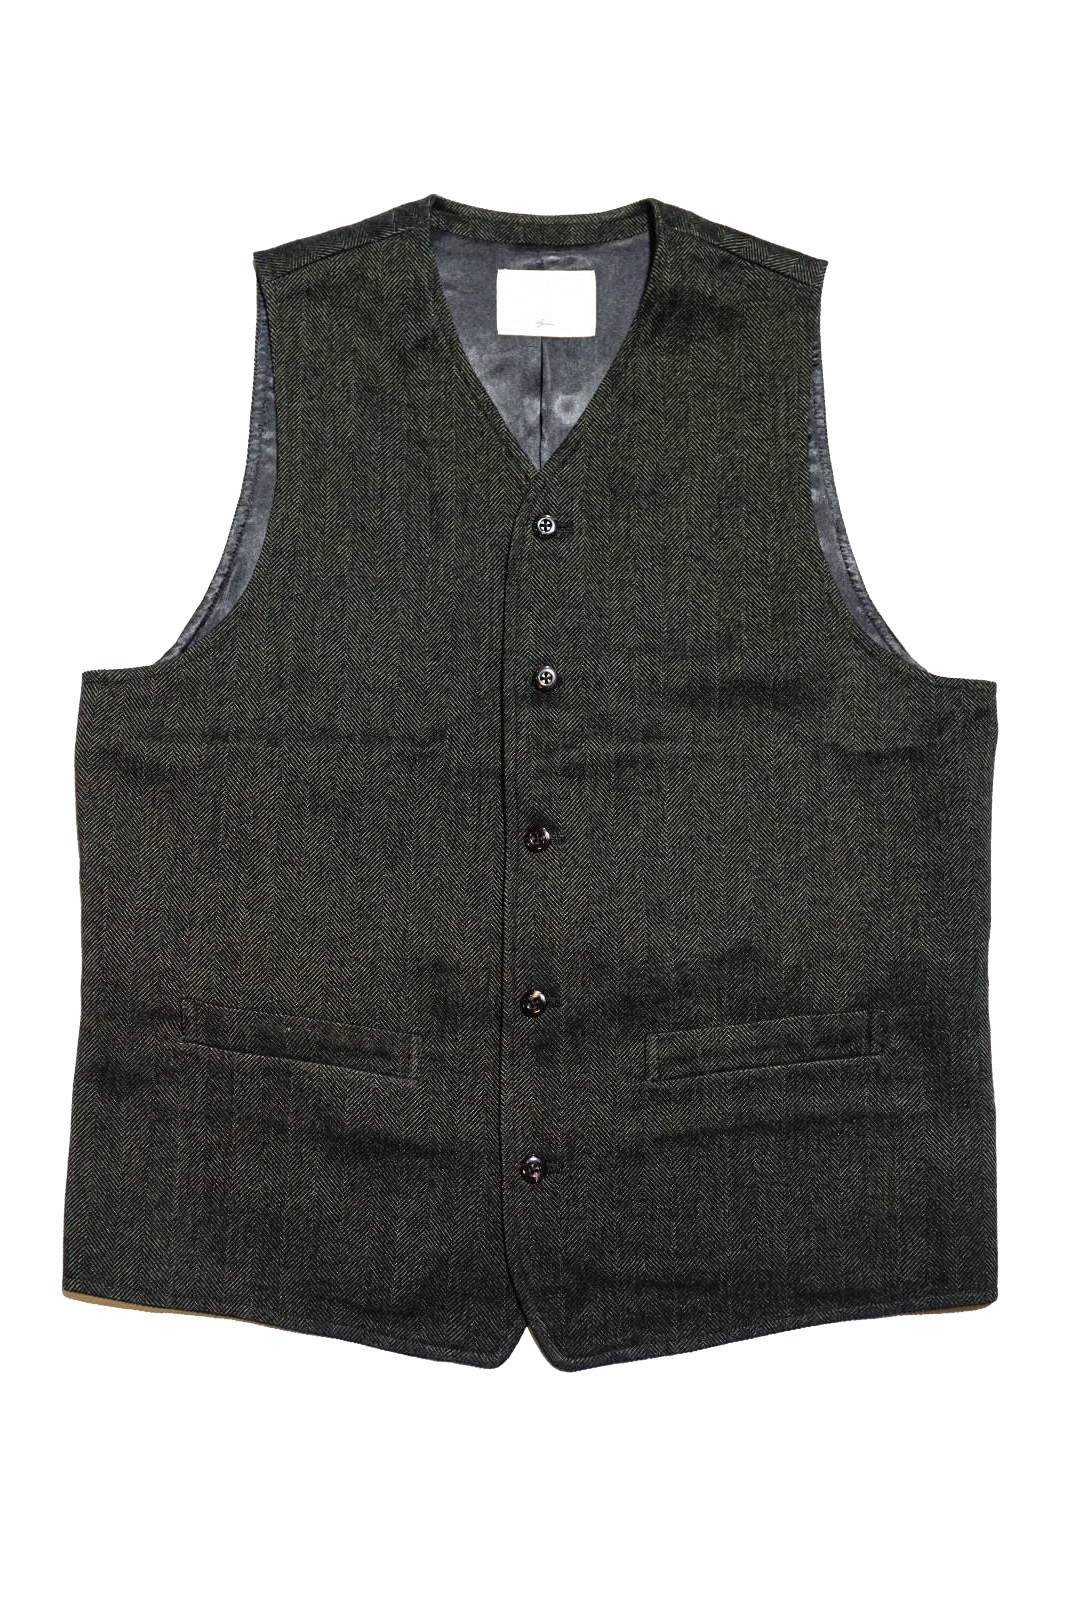 ANDFAMILYS CO. WOOLY TWEED HERRINGBONE VEST MG